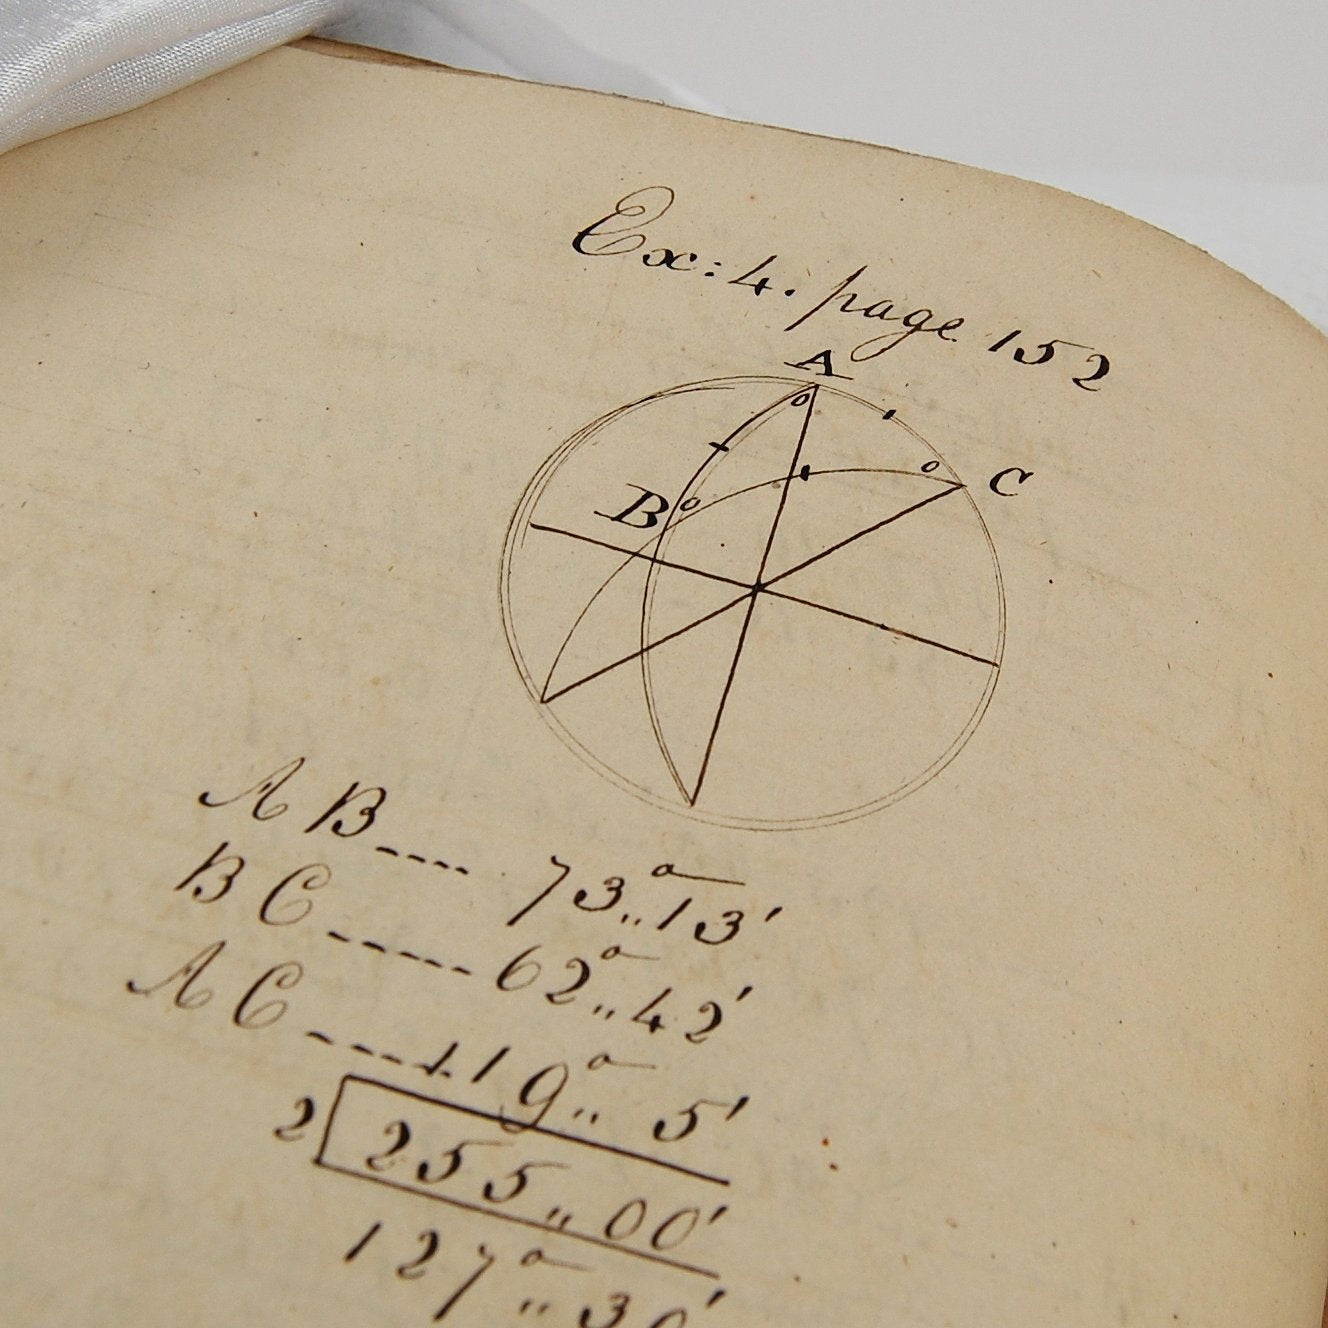 An Elegant Regency Era Mathematical Manuscript